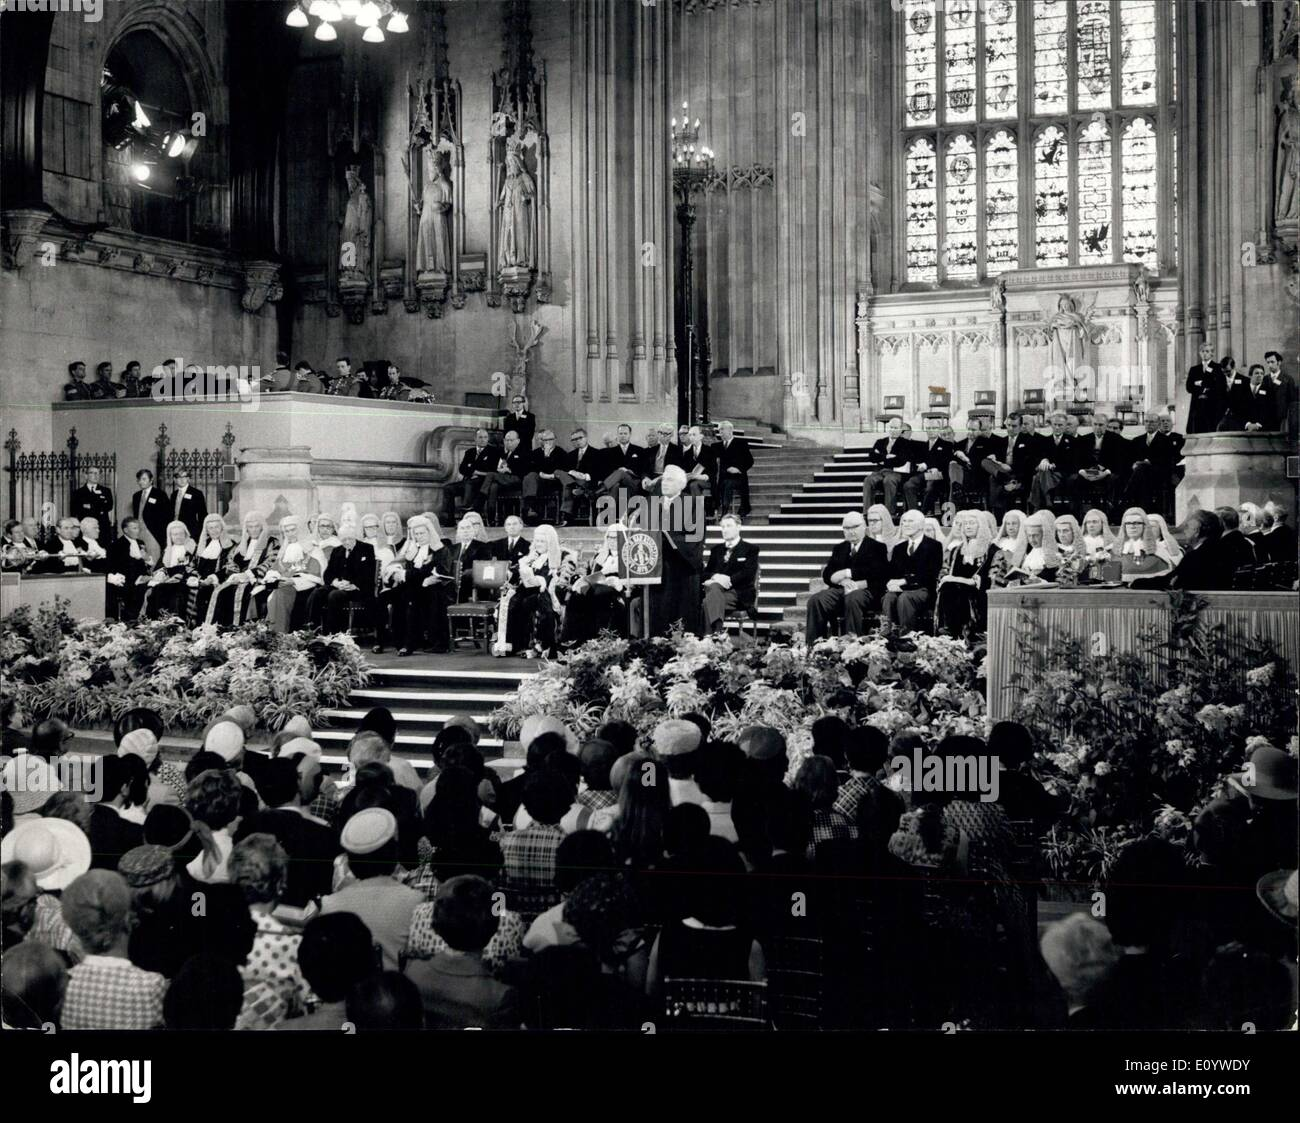 Jul. 14, 1971 - American Bar Association Inaugural Assembly at Westminster Hall.: More than 5,000 American Lawyers, Judges, and - Stock Image